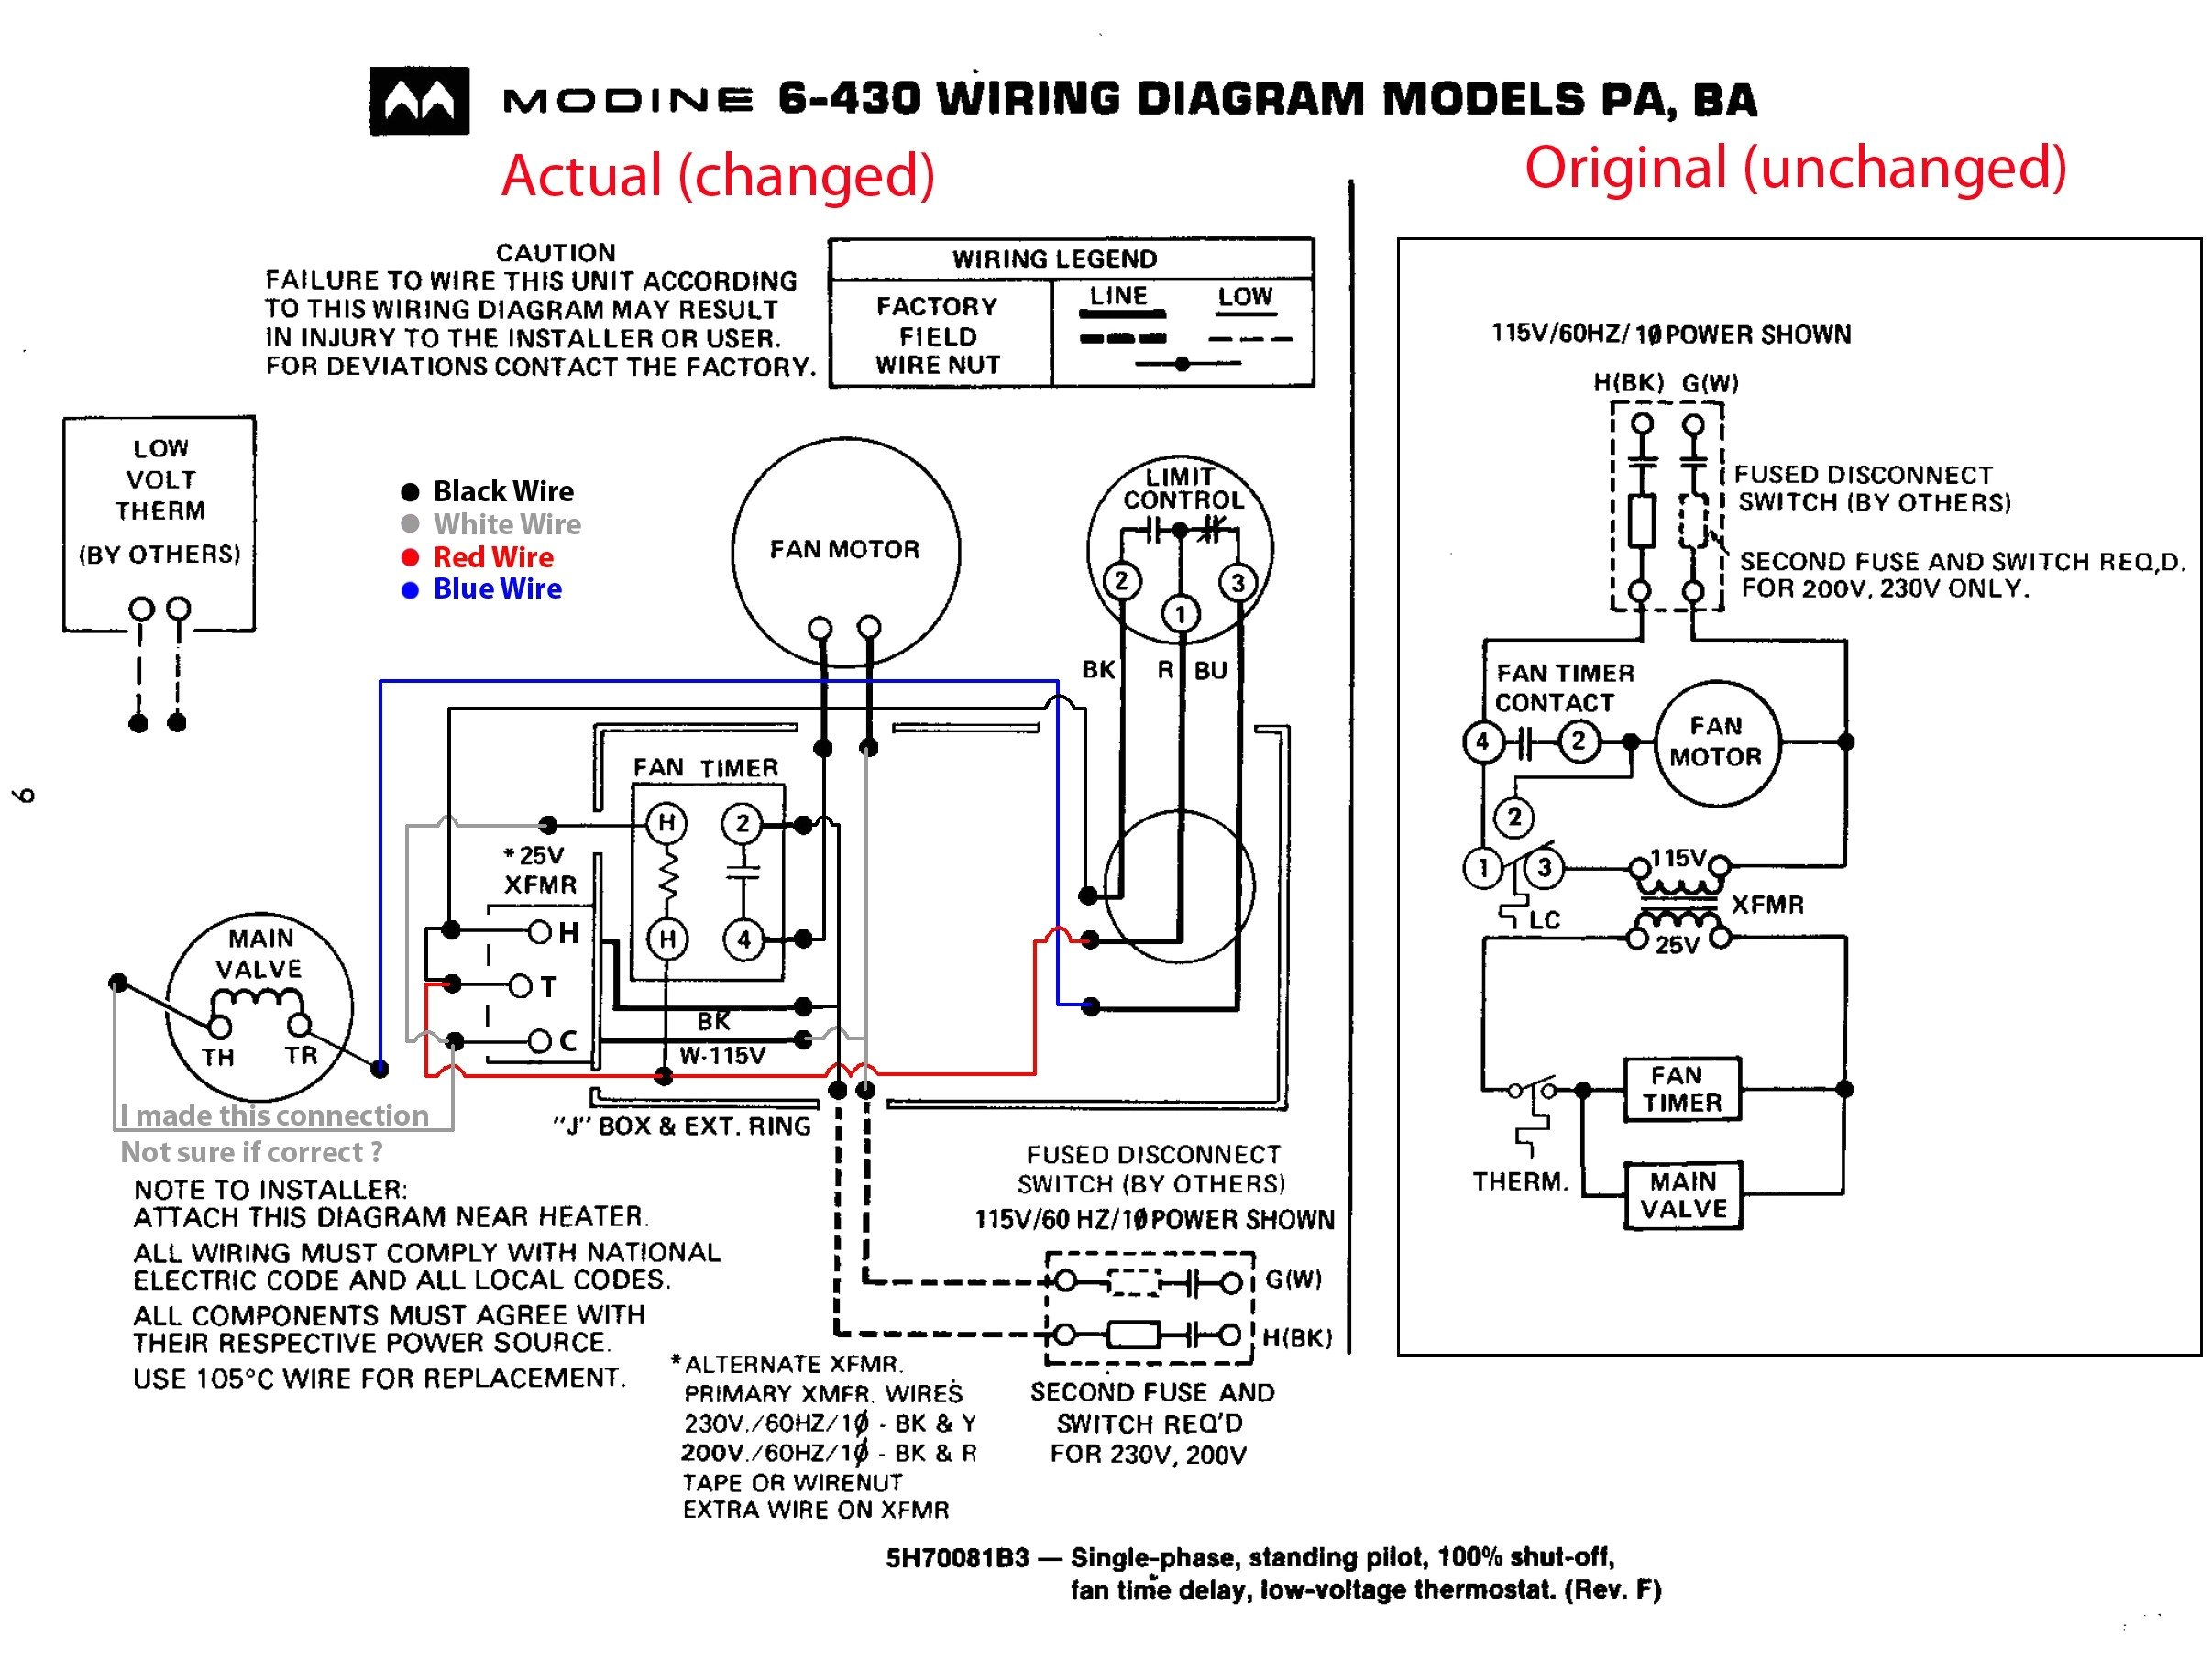 Disconnect Wiring Diagram Disconnect Switch Wiring Diagram Best Of Wiring Diagram for Pioneer